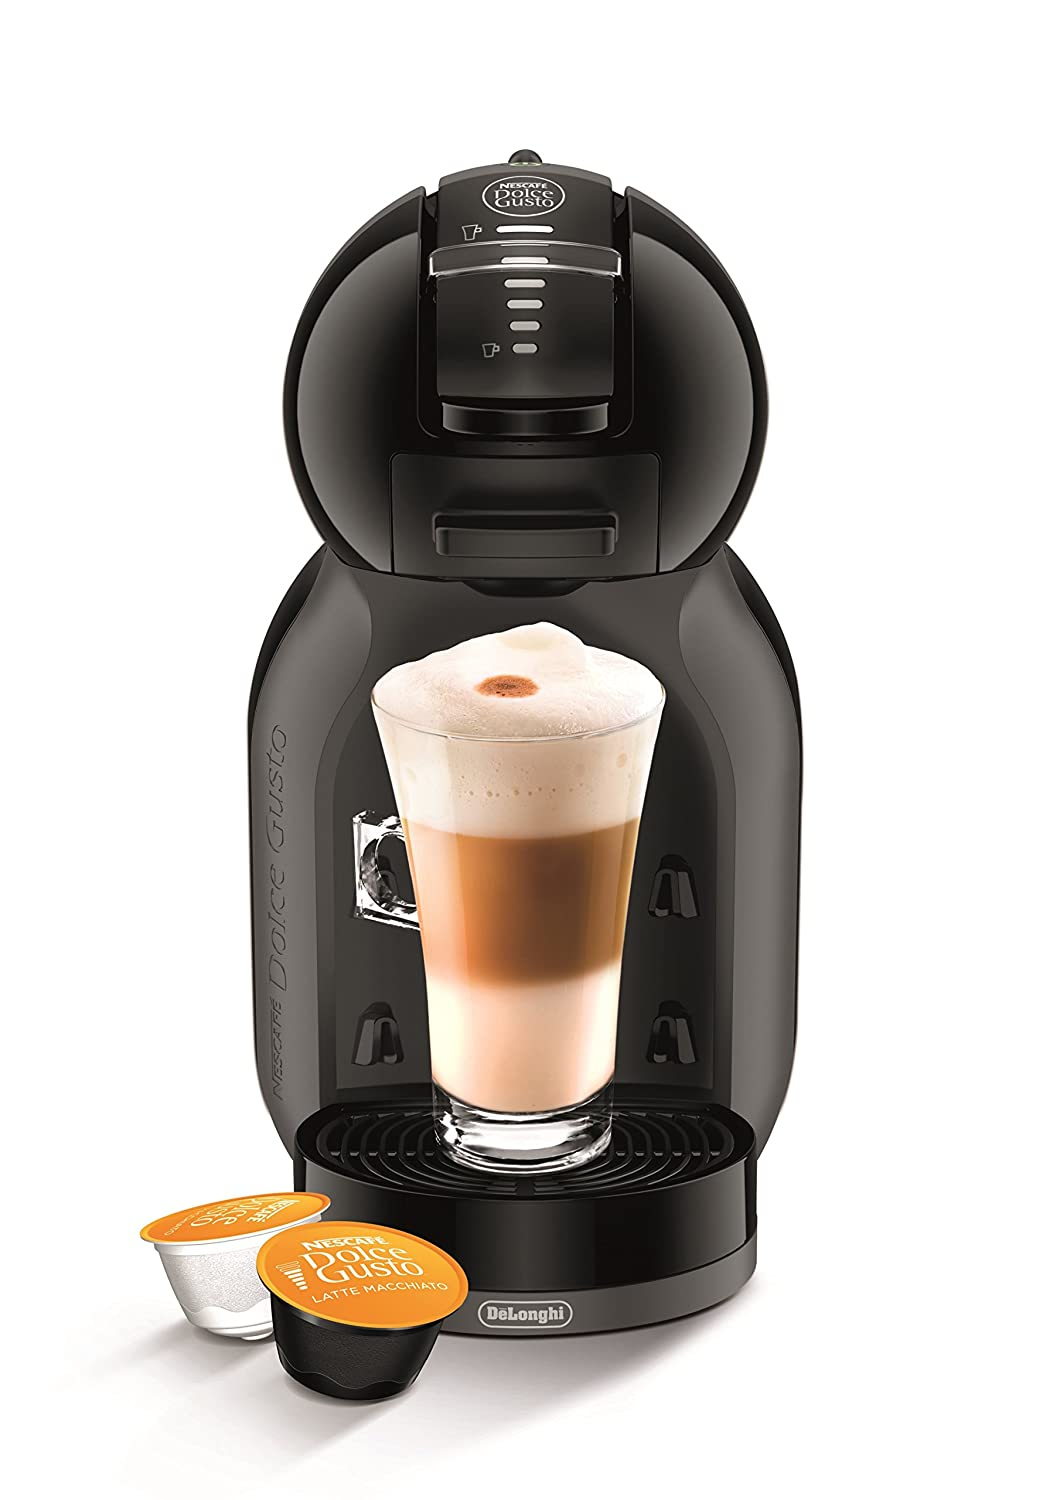 NESCAFÉ Dolce Gusto Mini Me Coffee Machine Starter Kit by De'Longhi, White/Black Delonghi EDG305.WB